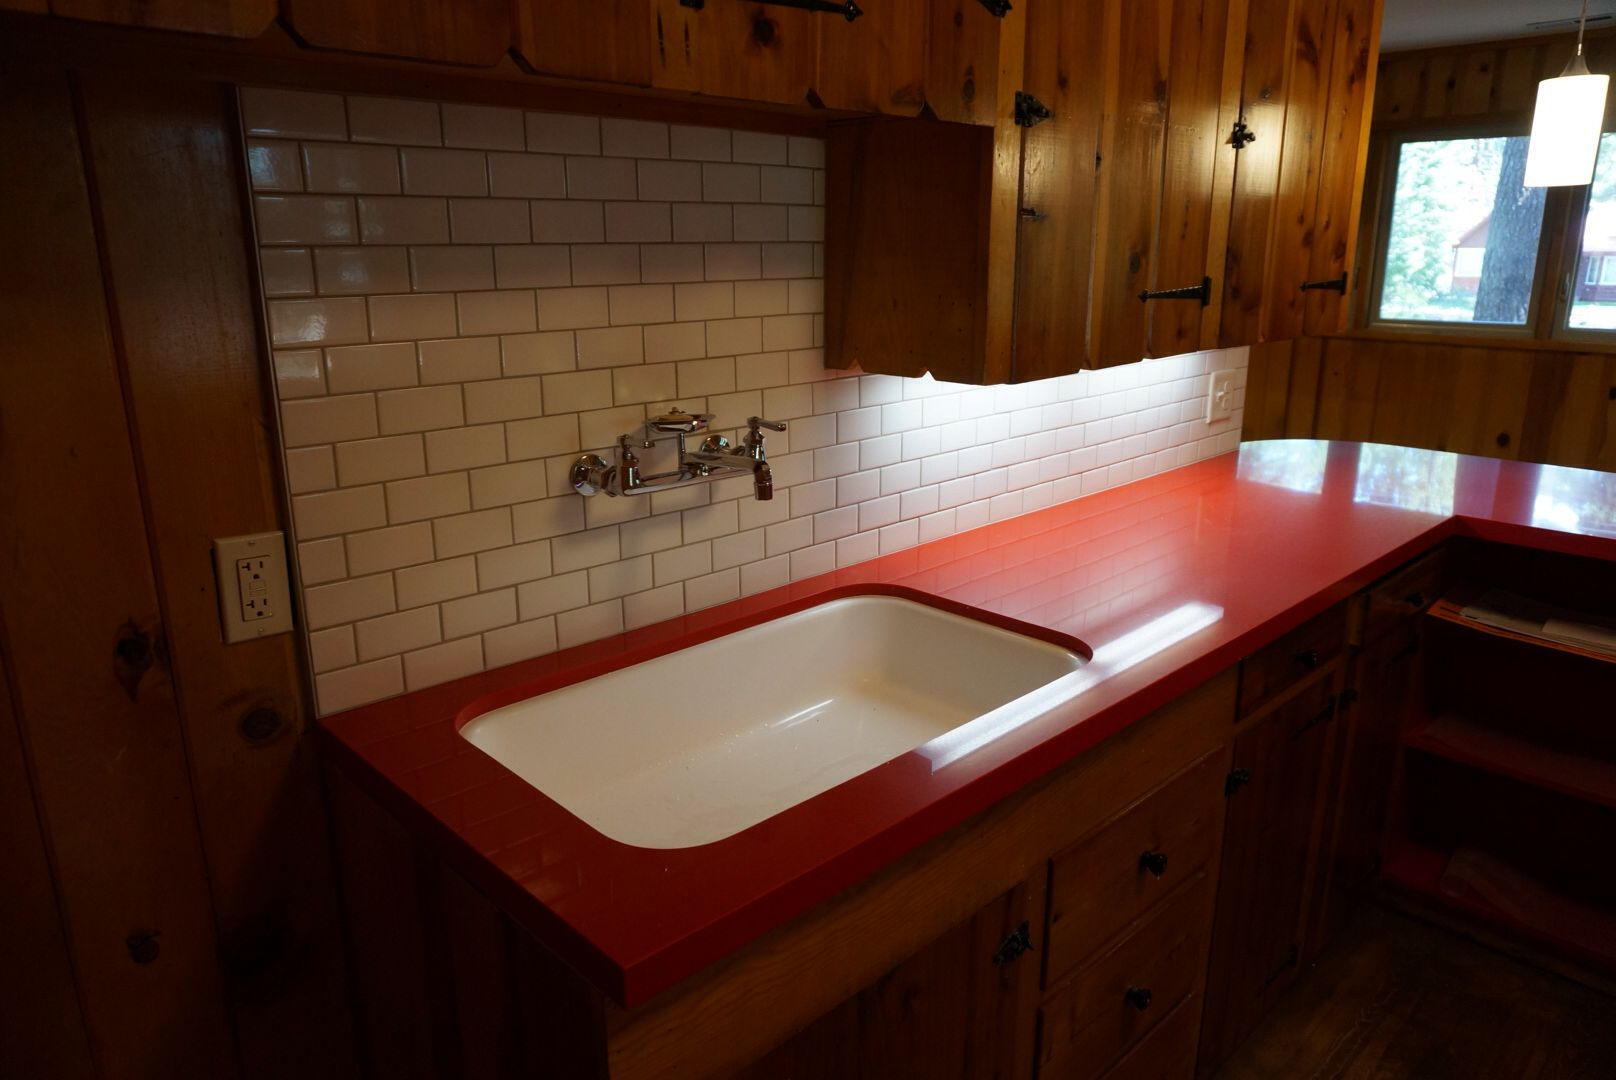 Cabin Kitchen Sink Refurbished With New Quartz Red Countertops